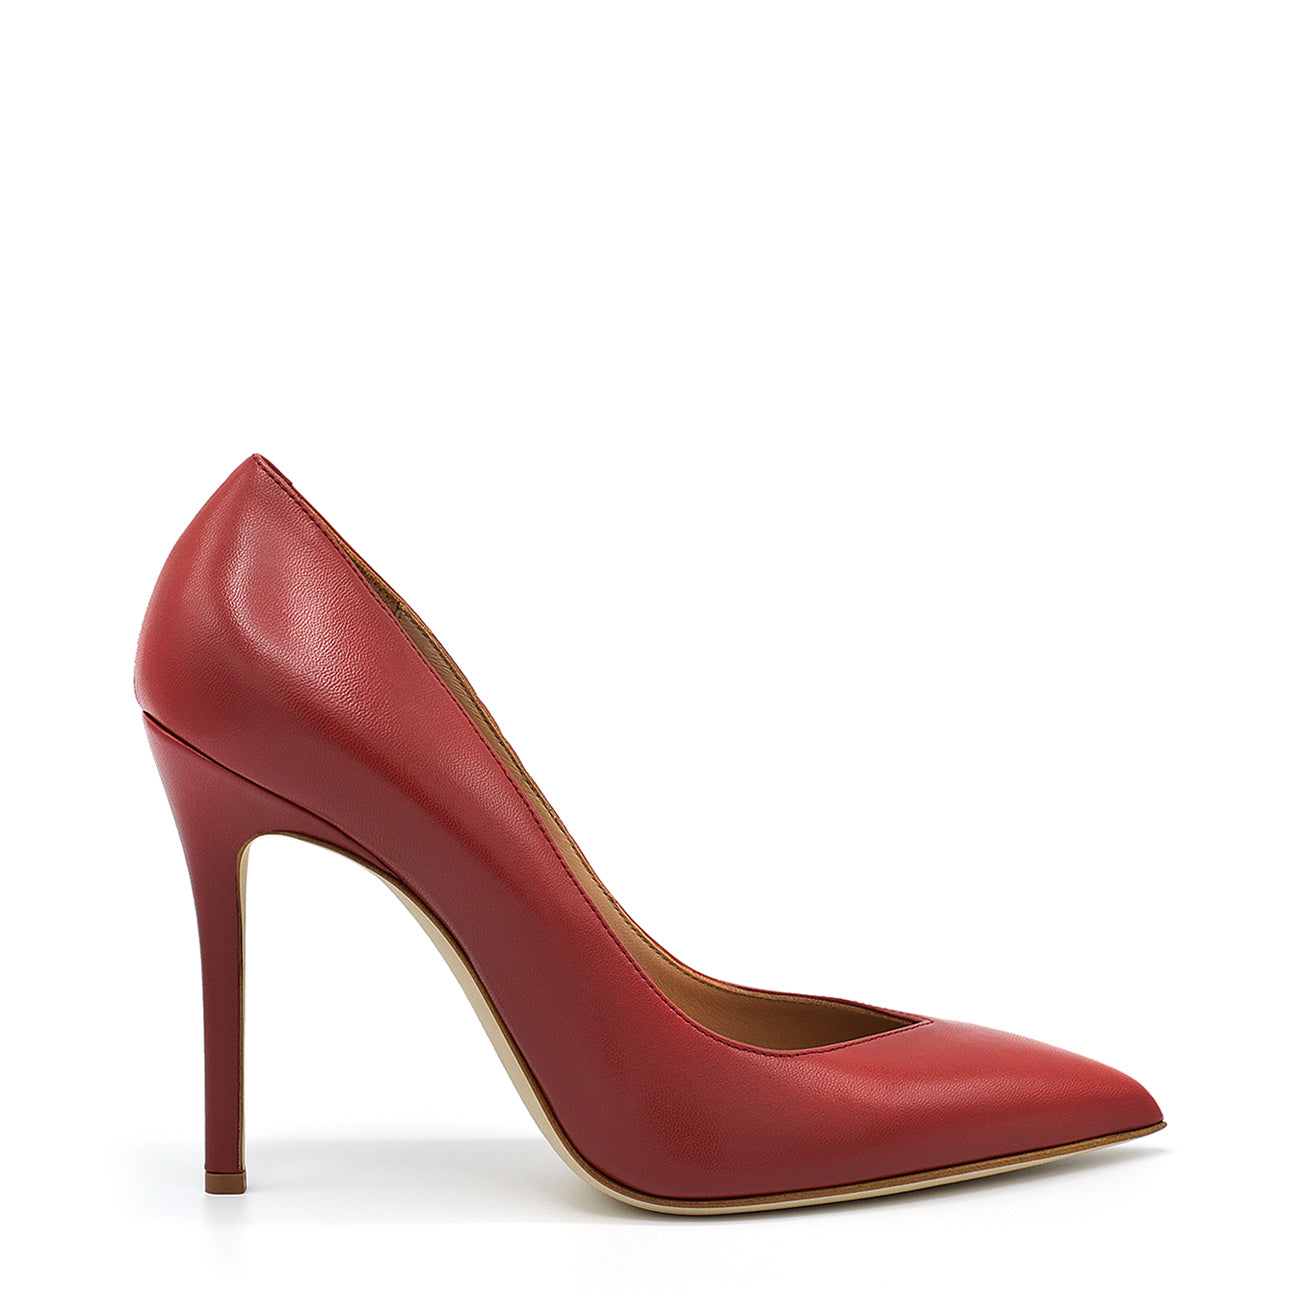 Lexy. <br> Passion red nappa leather pumps